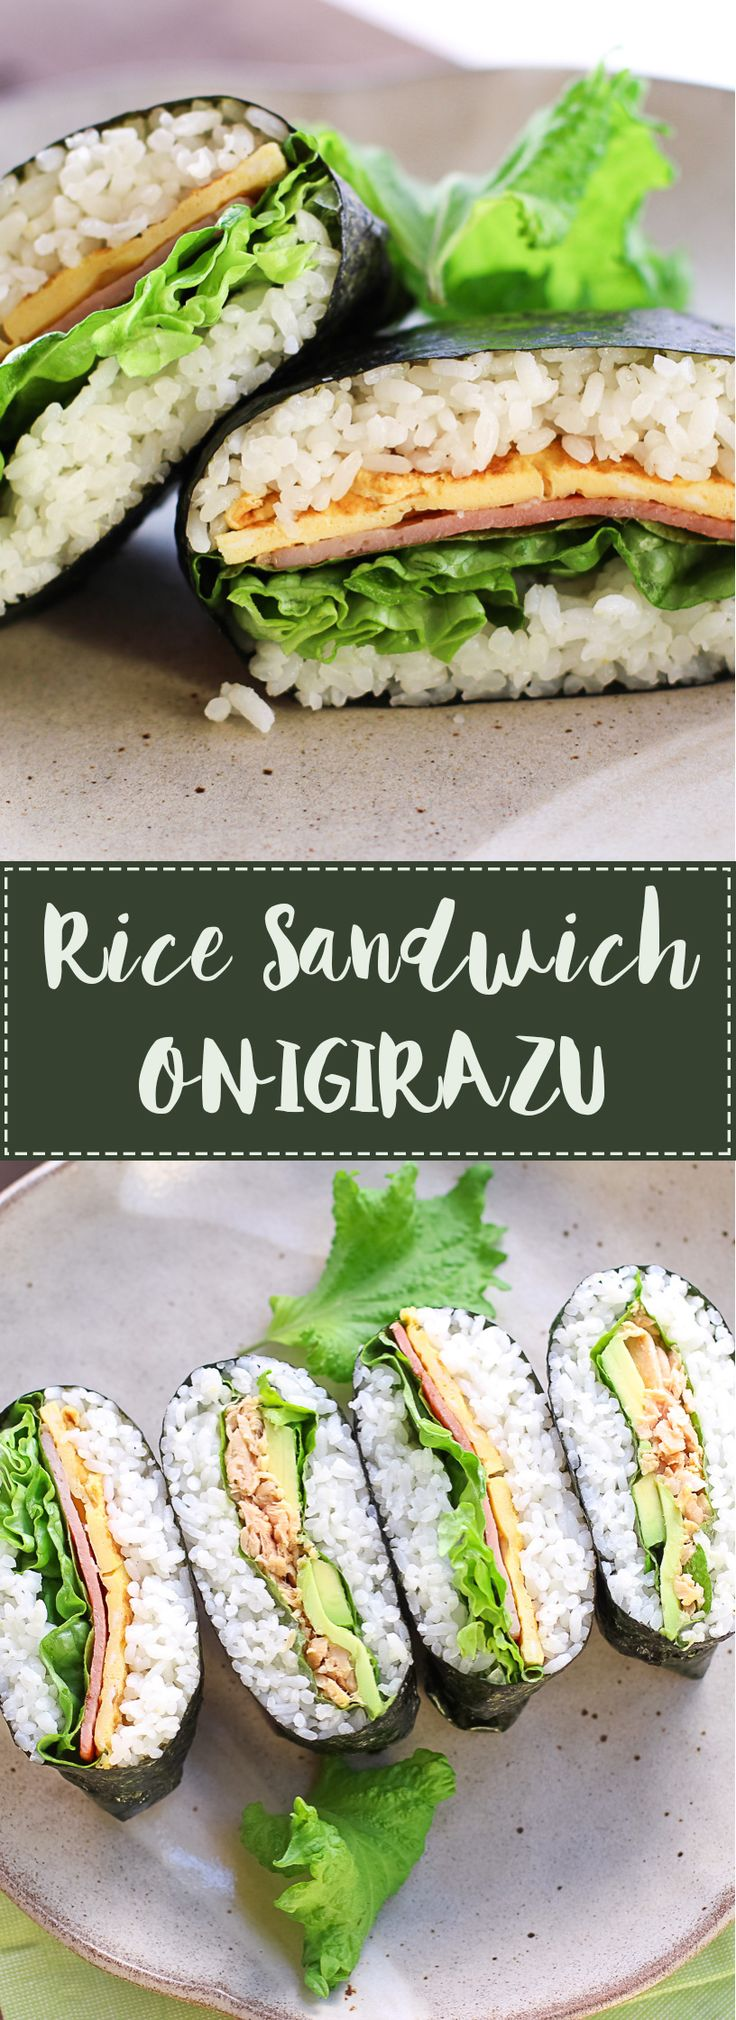 BLT Rice Sandwich-Onigirazu | WATCH for more ideas: https://www.youtube.com/watch?v=5kEd3vDtKNw